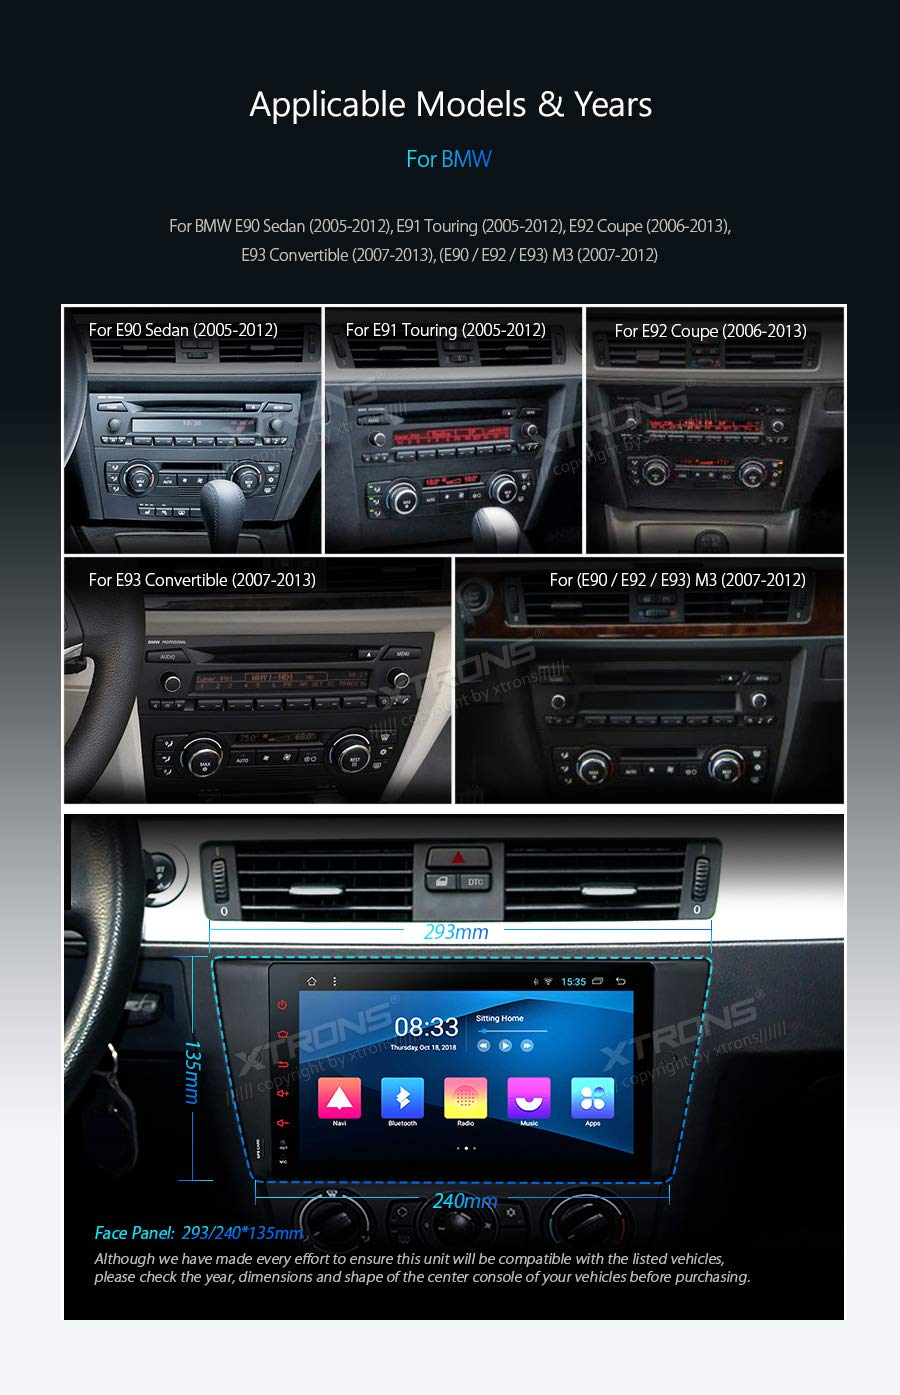 XTRONS-9-Android-Autoradio-mit-Touchscreen-Android-81-Quad-Core-DVD-Player-Autostereo-4G-Full-RCA-Ausgang-Bluetooth50-Lenkradfernbedienung-16GB-ROM-DAB-OBD2-TPMS-FR-BMW